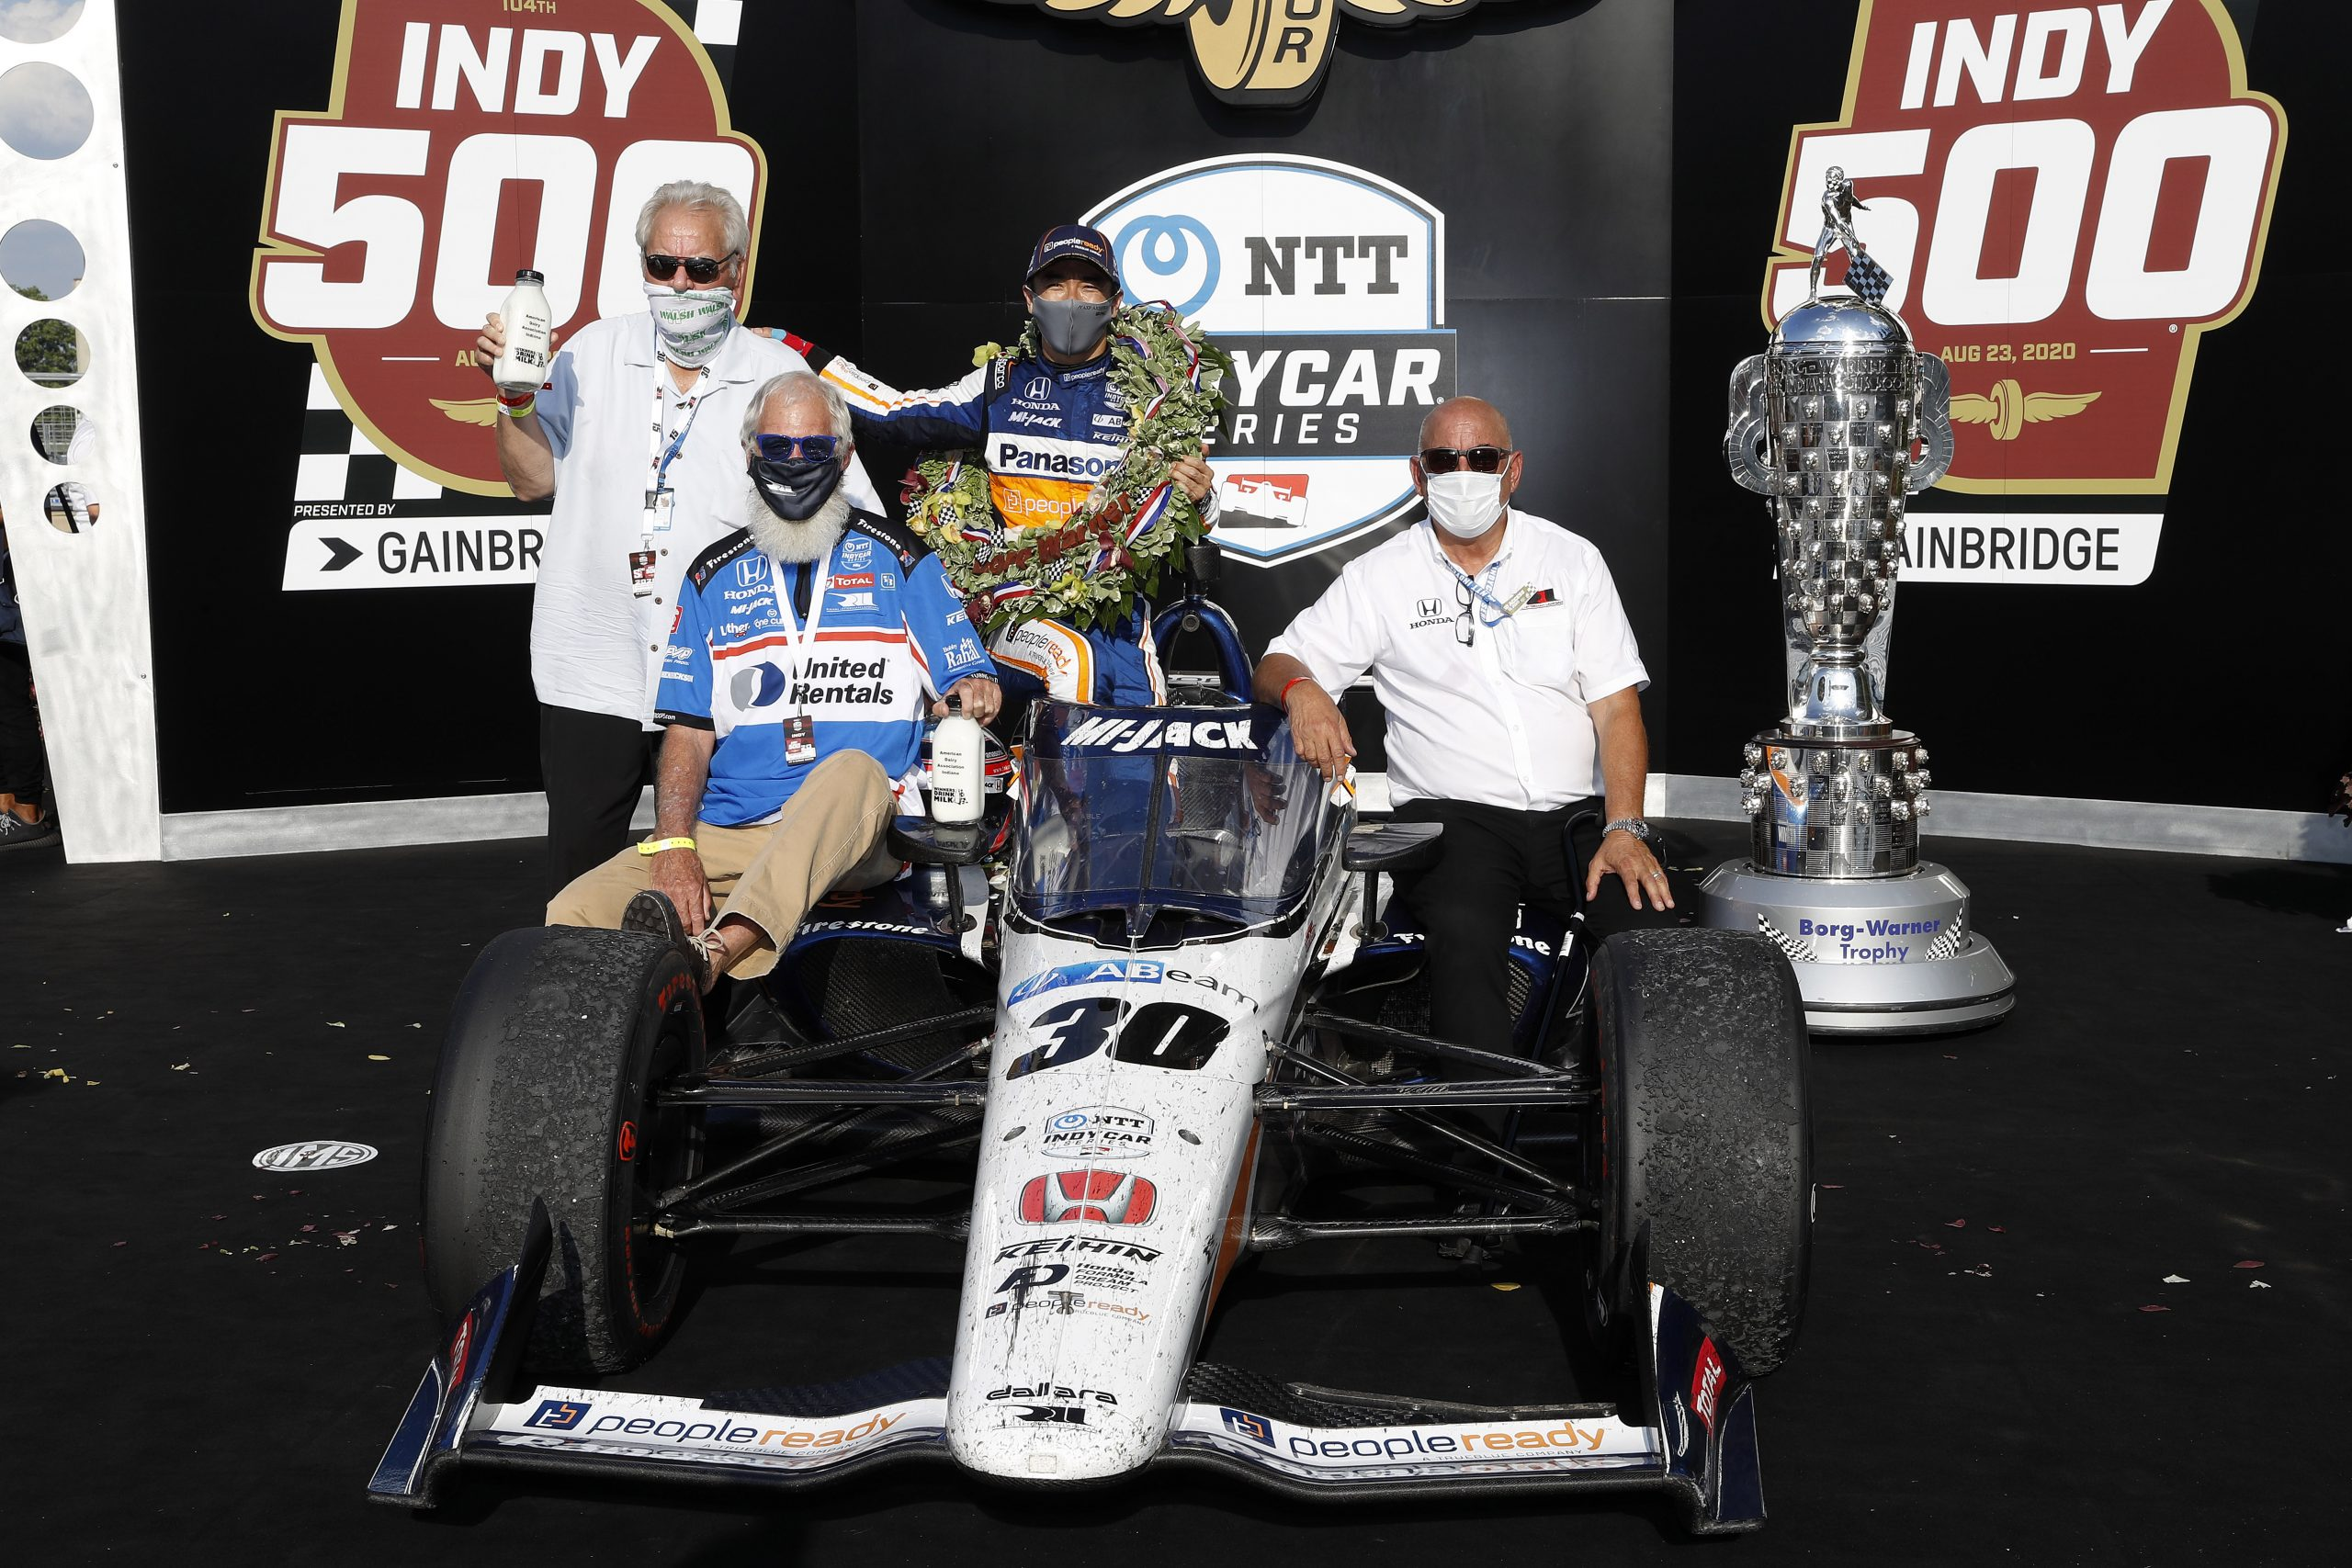 Rahal Letterman Lanigan Racing: Building Upon Its Legacy in Zionsville